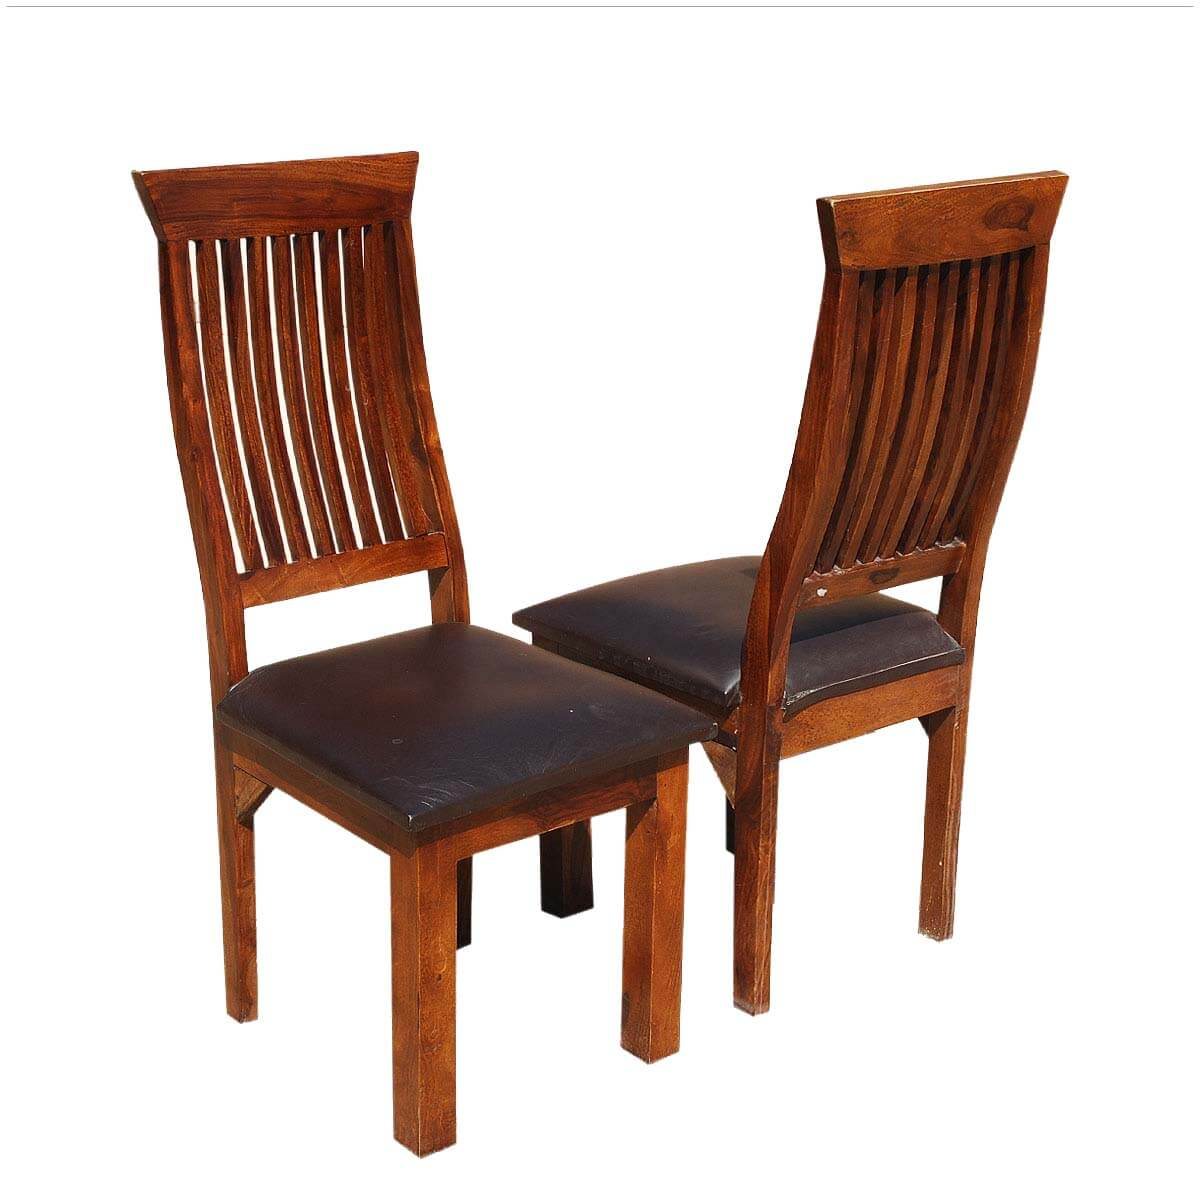 Unfinished Wood Dining Chairs Ergonomic Solid Wood And Leather Dining Chair Set Of 2